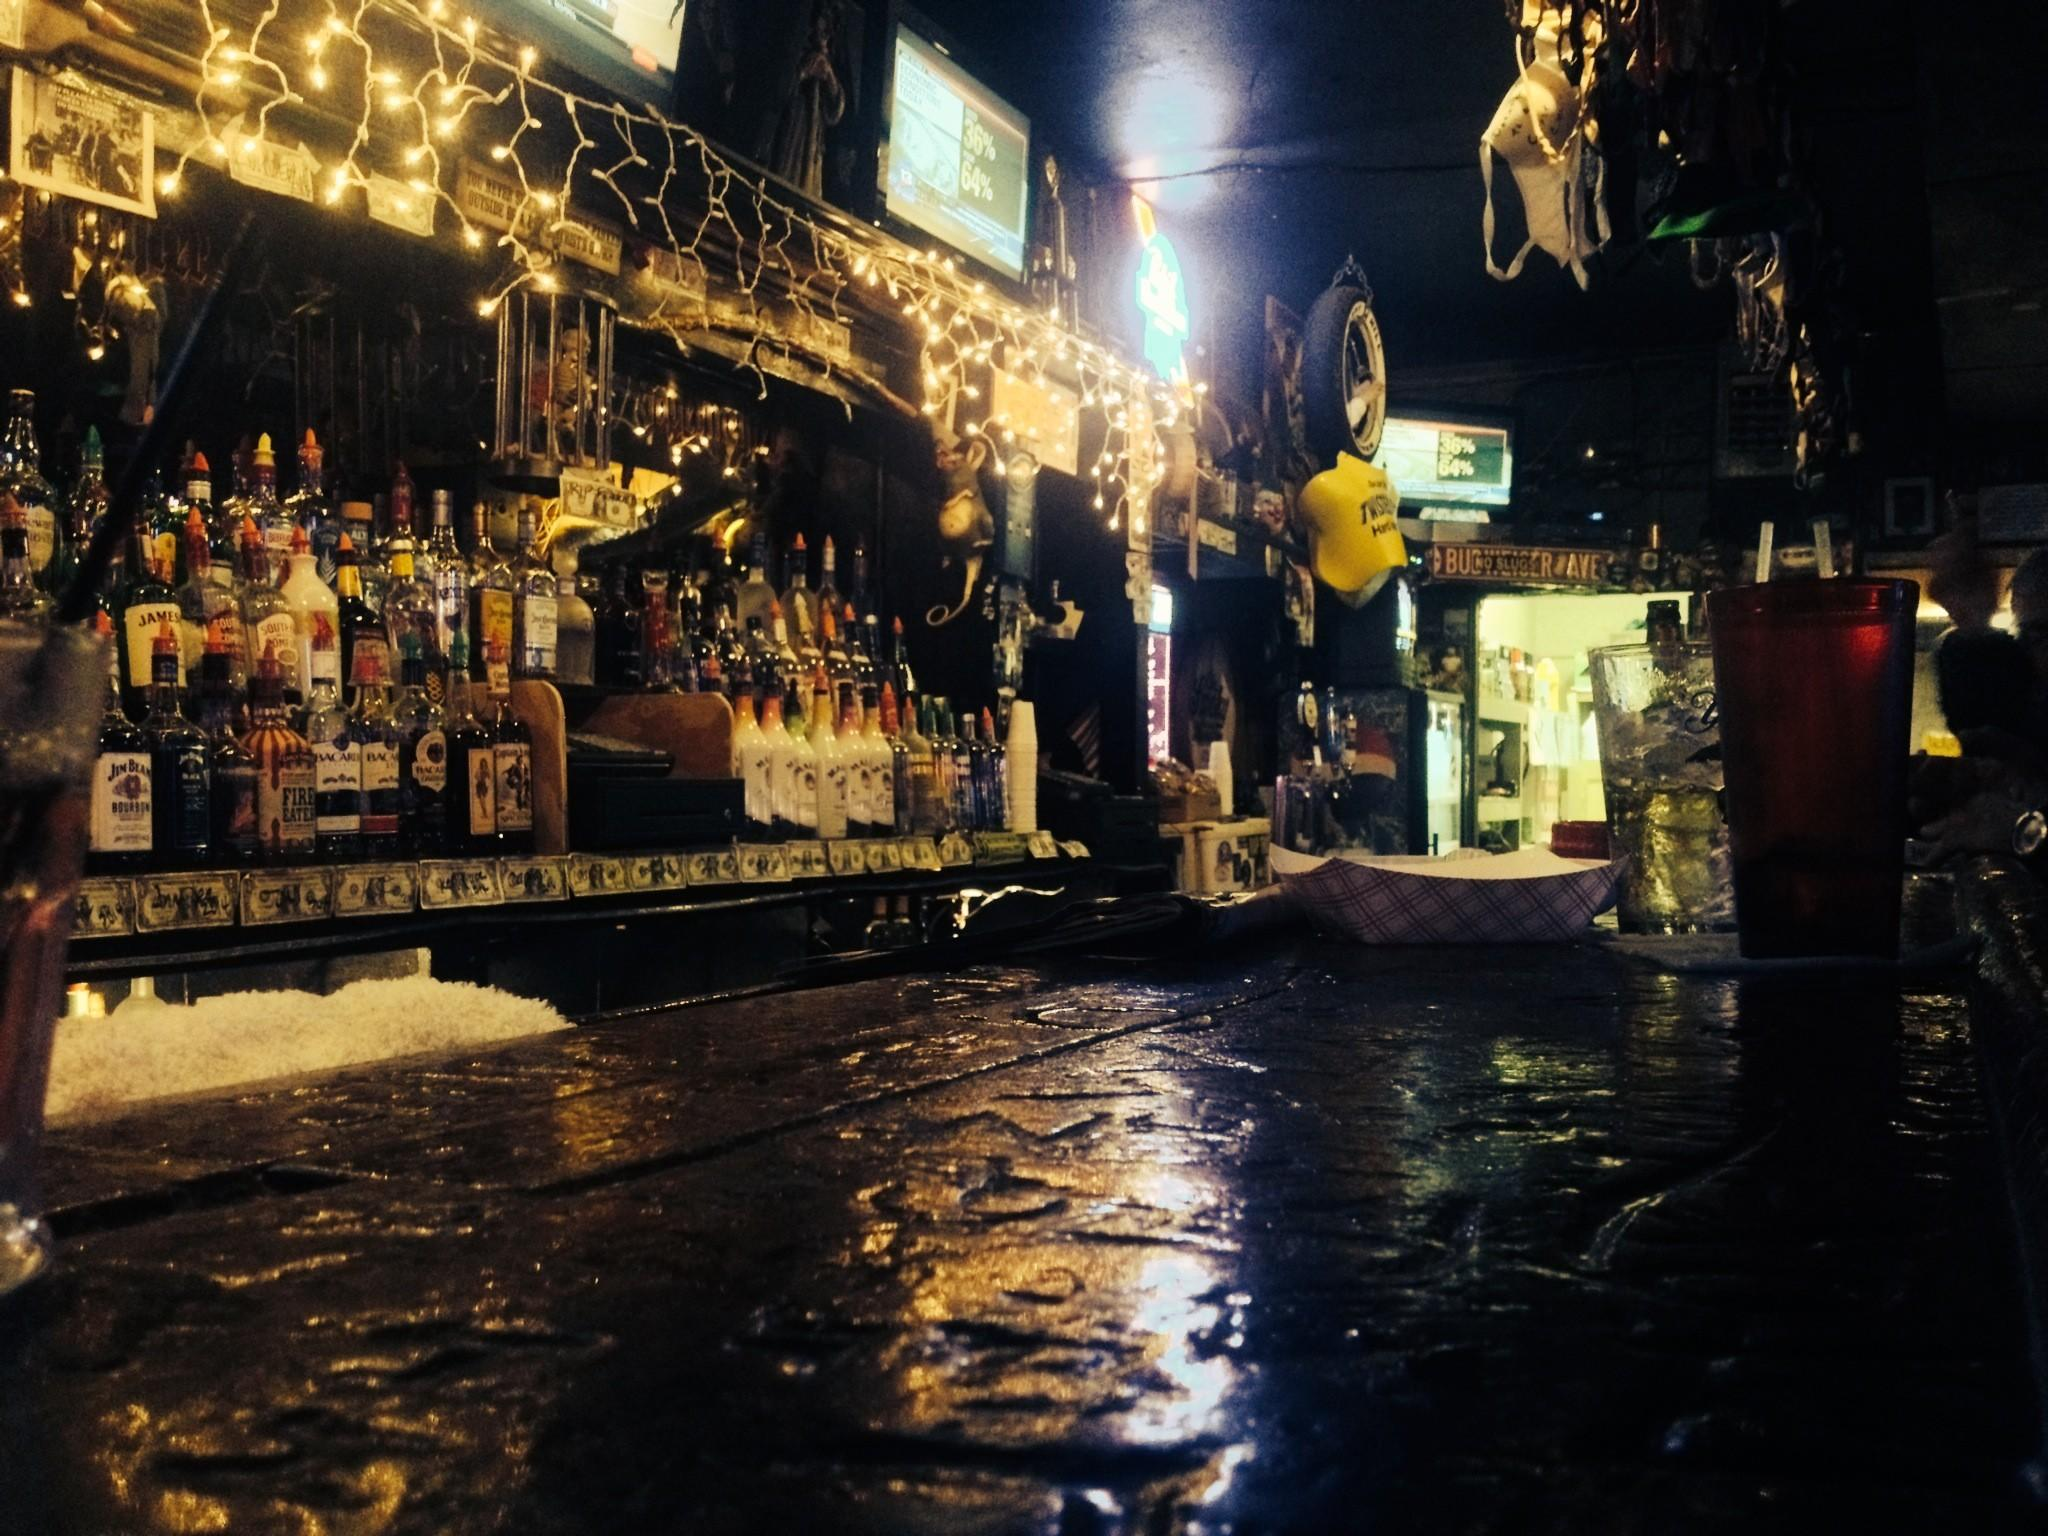 If bar tops could talk: Boot Hill Saloon caters to bikers (and race fans) on Main Street in Daytona Beach.